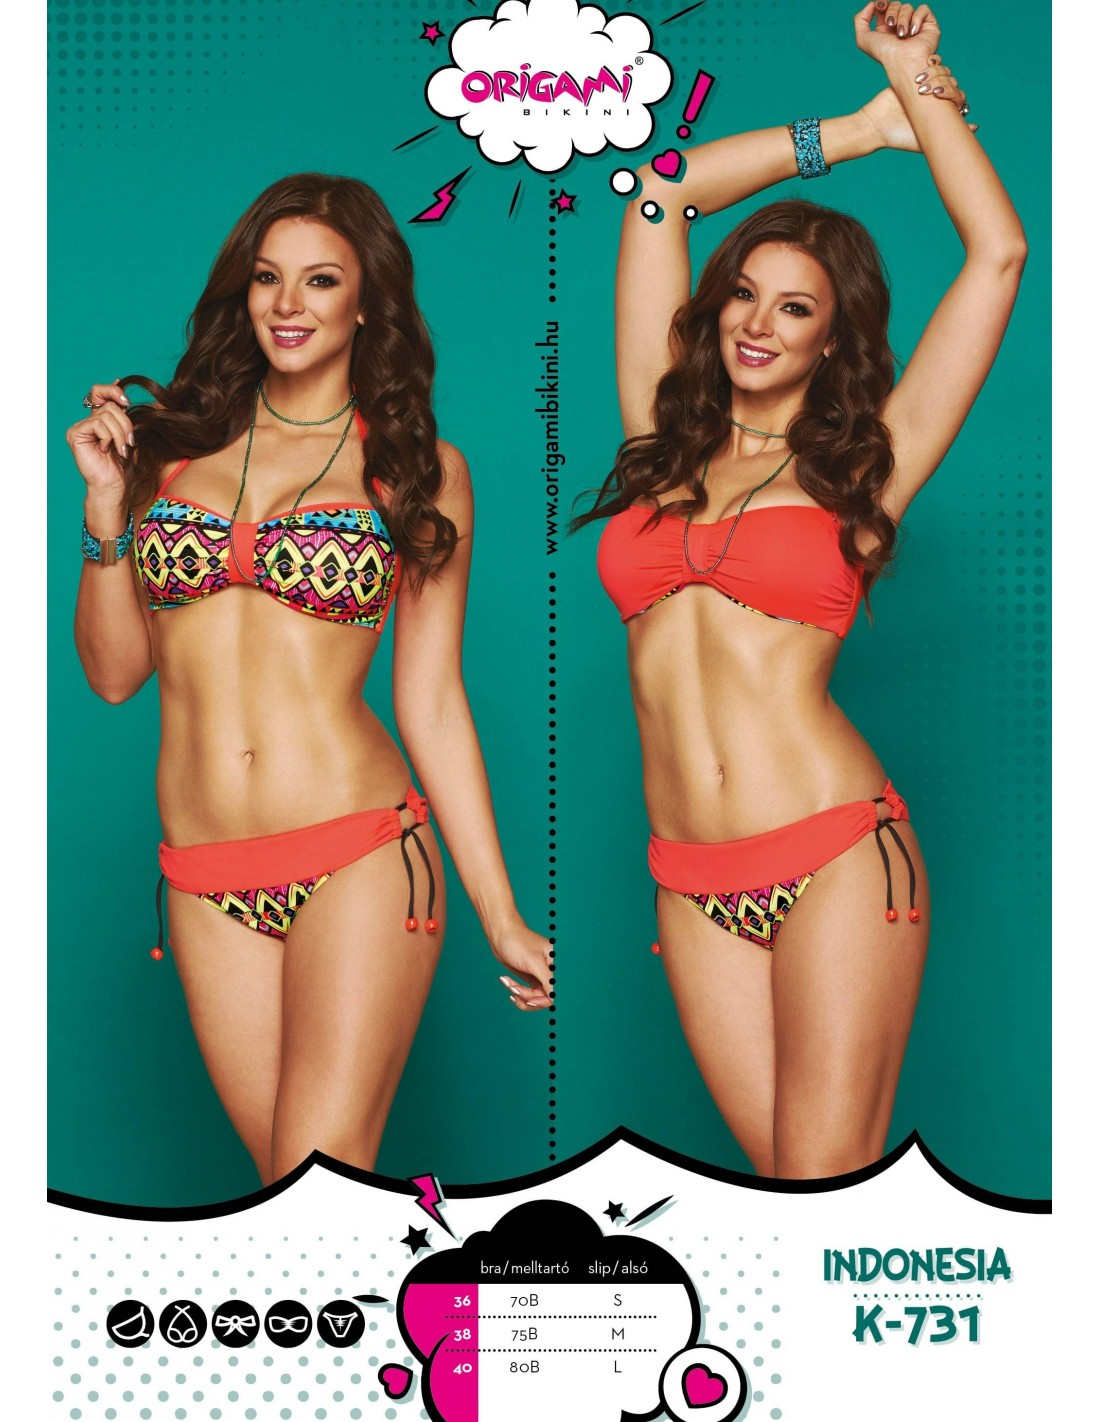 Indonesia K-731 Origami Bikini 943f8cd606